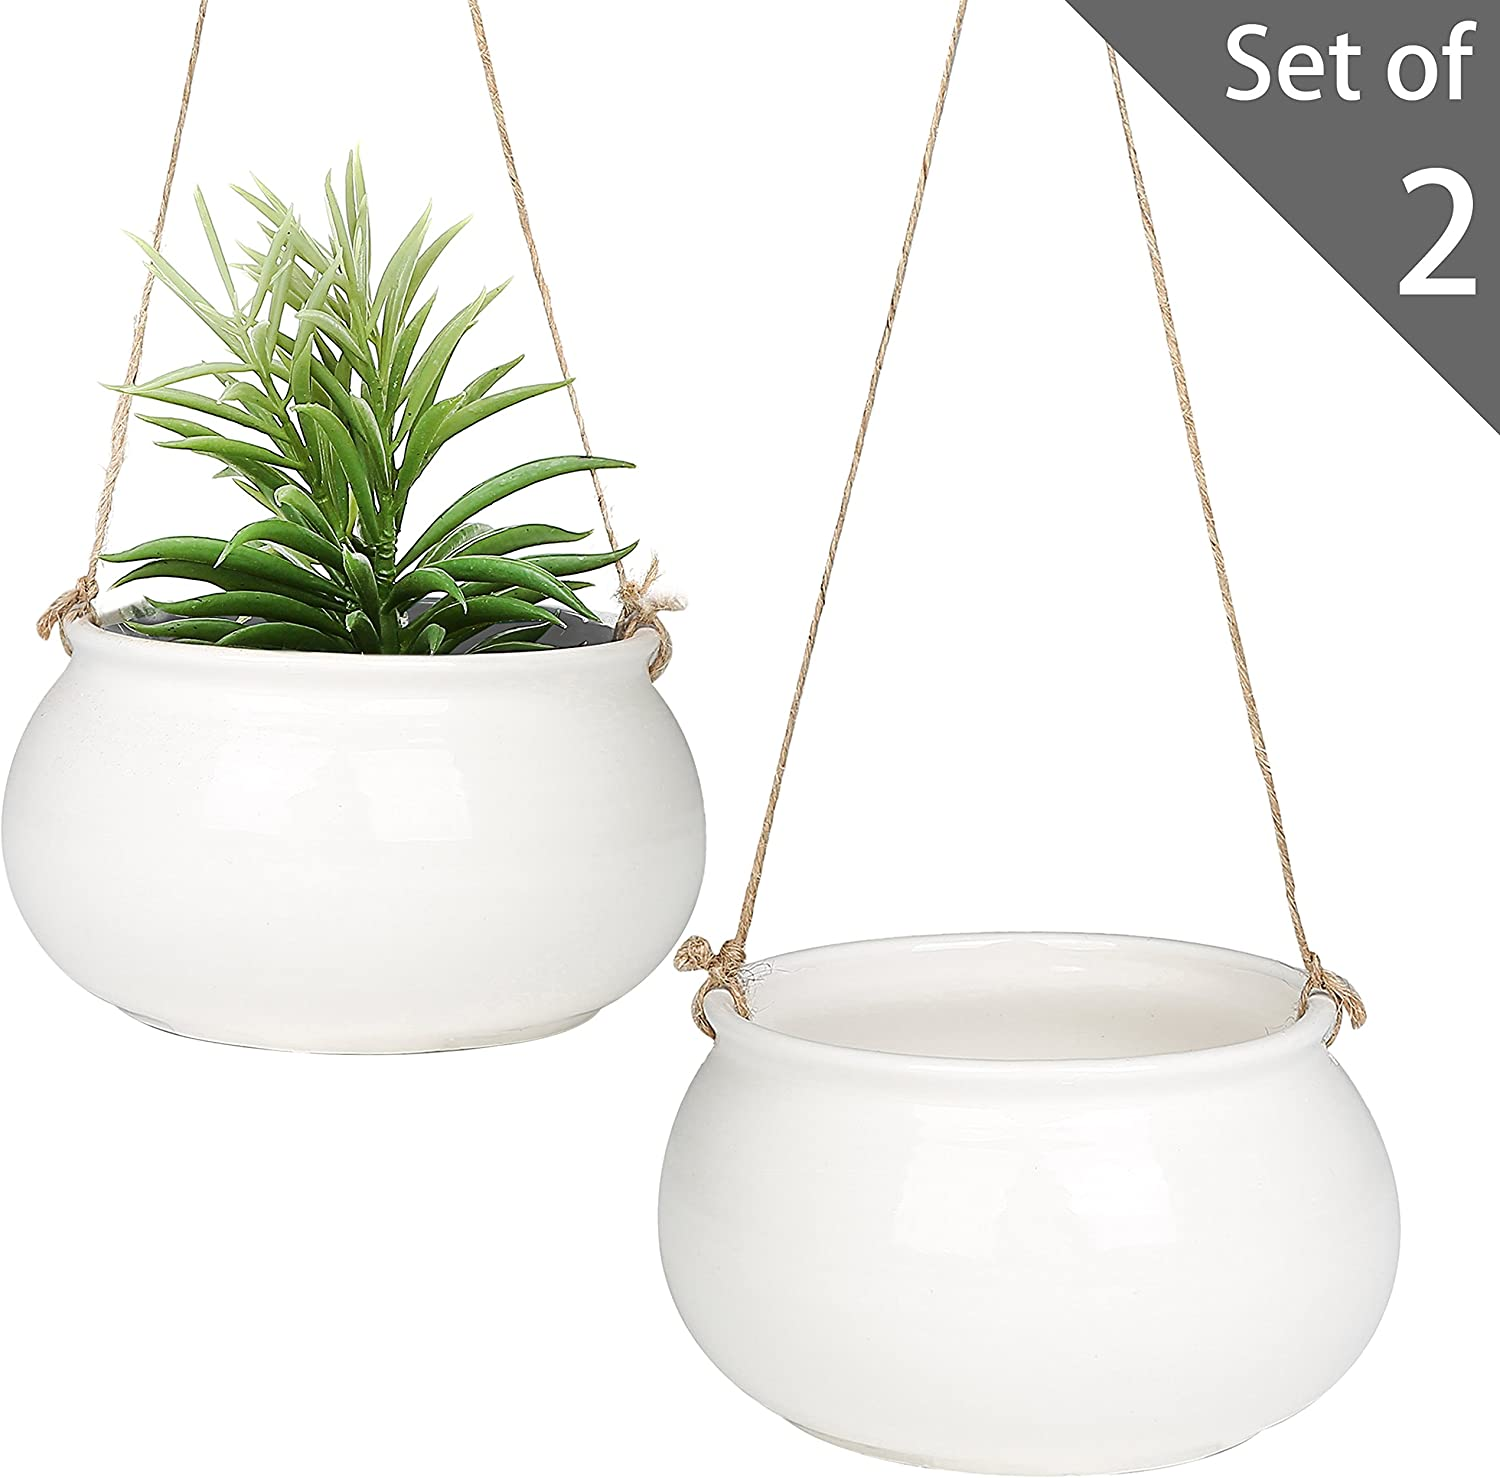 MyGift 7-Inch Round White Ceramic Hanging Planter Pots with Jute Twine Rope, Set of 2